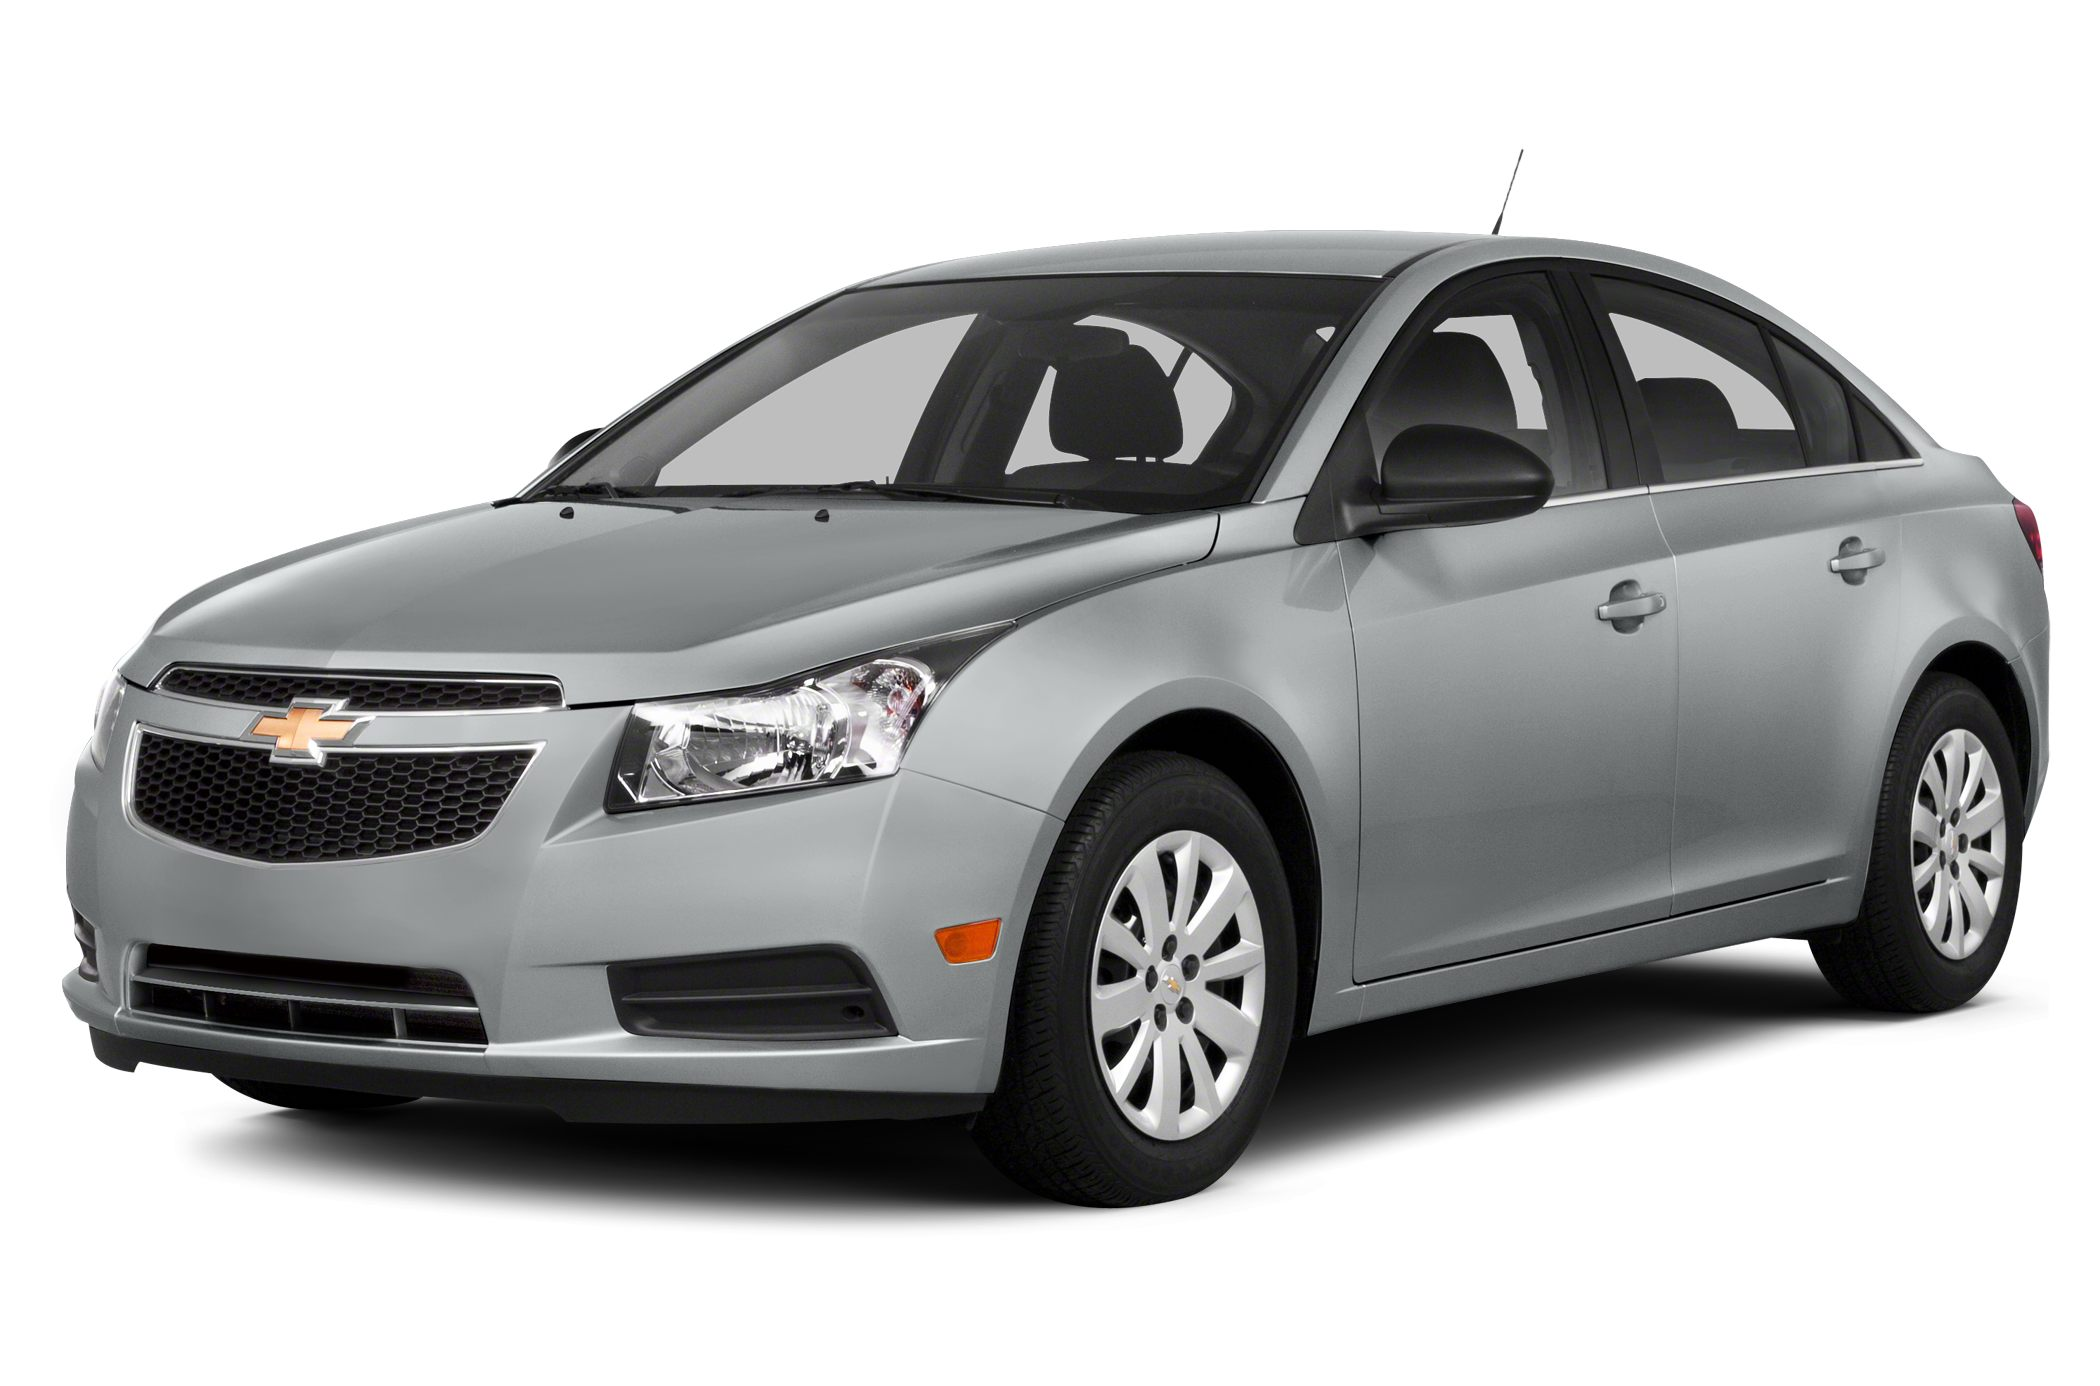 2014 Chevrolet Cruze 1LT Sedan for sale in Palm Desert for $16,999 with 11,159 miles